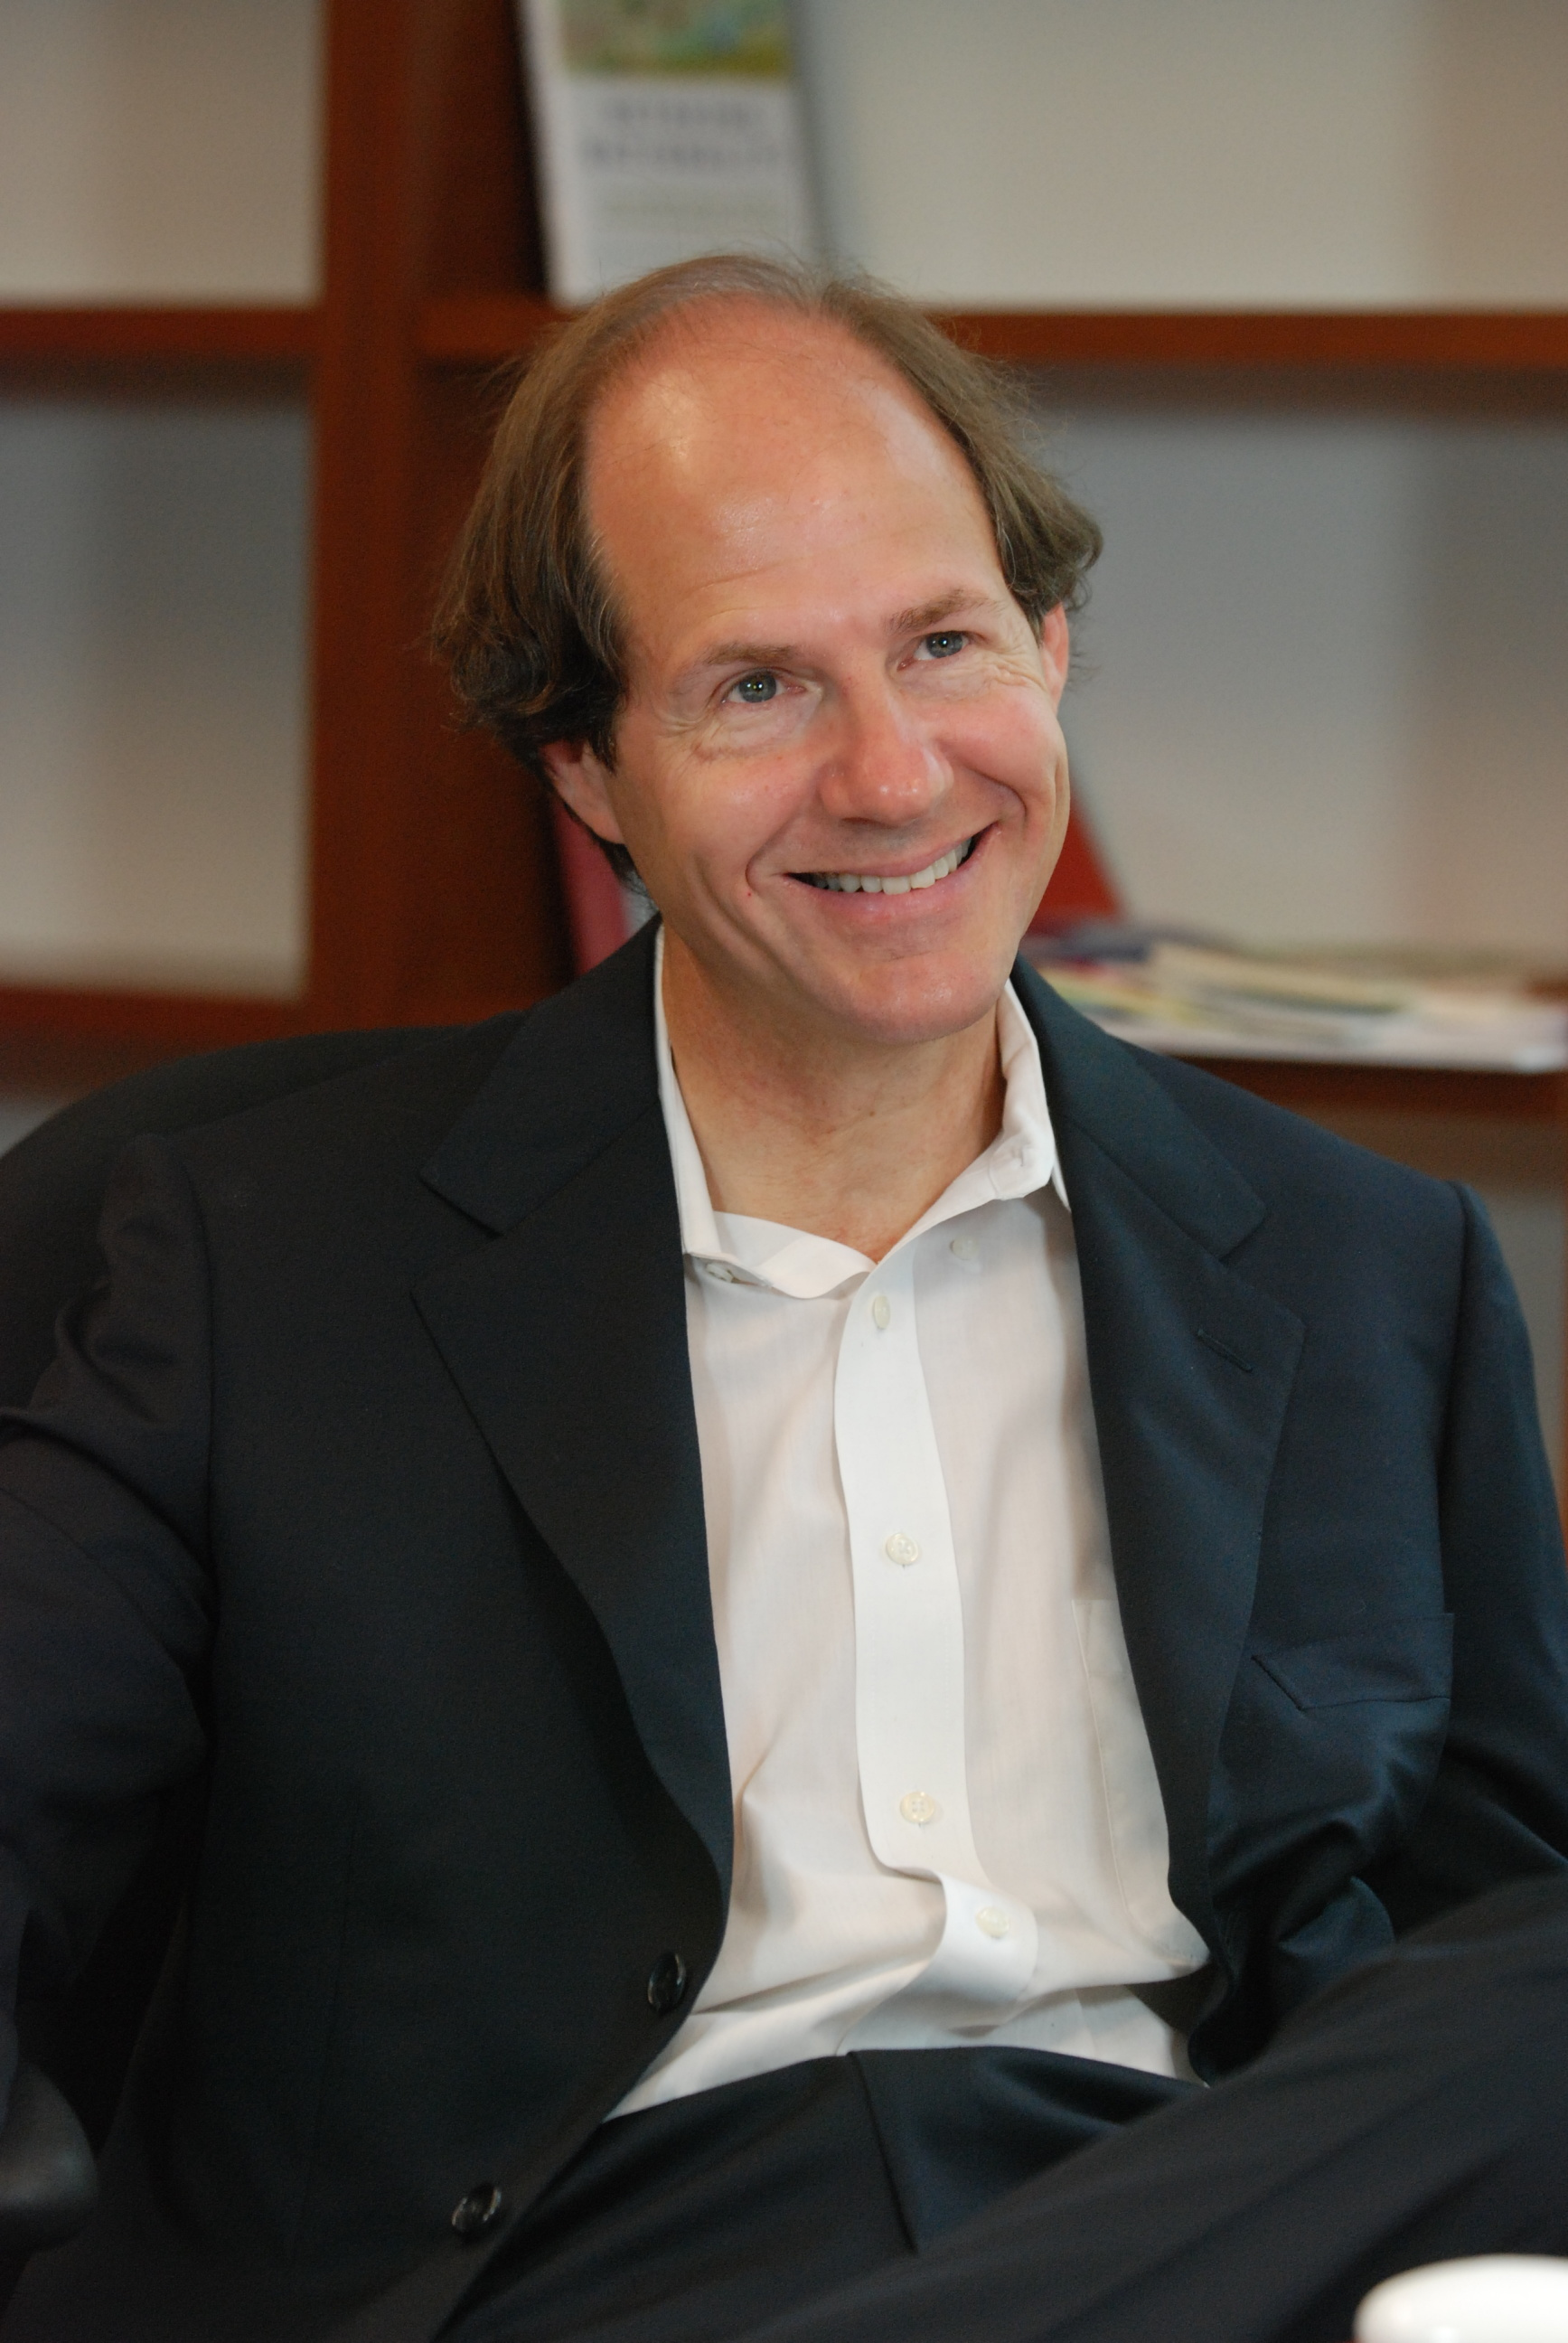 Cass Sunstein, foto: Phil Farsworth.